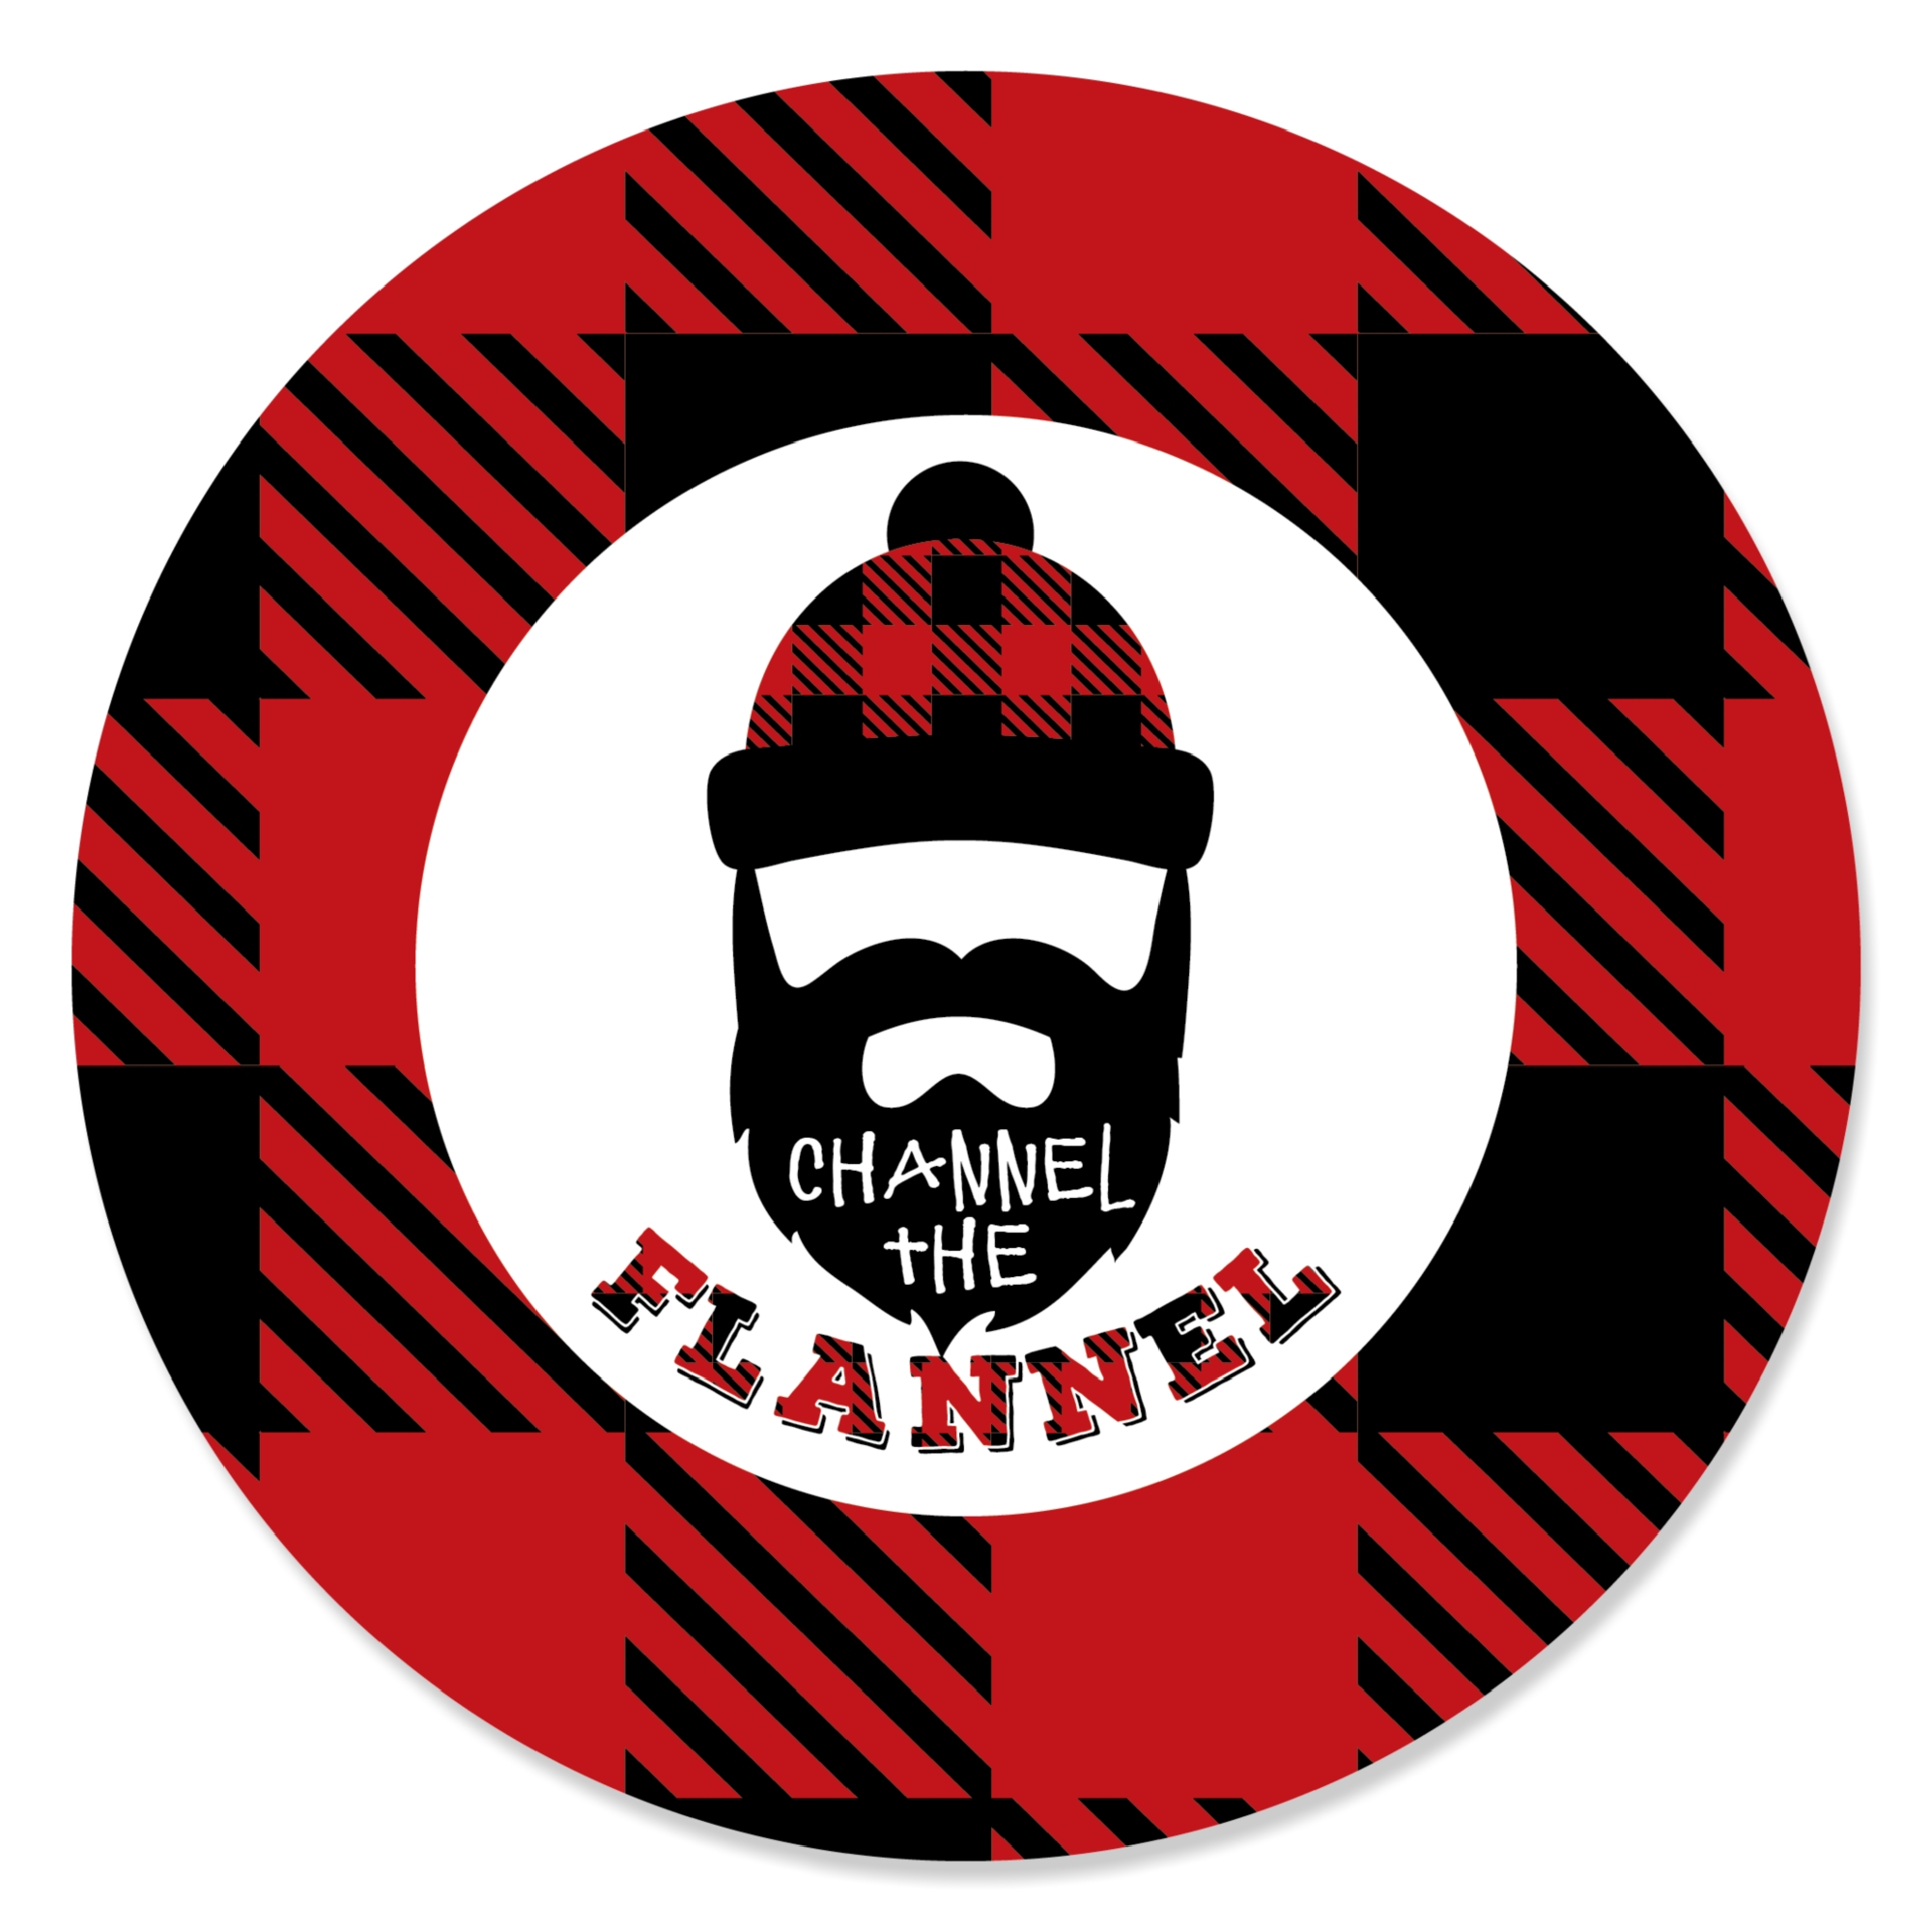 Lumberjack - Channel The Flannel - Buffalo Plaid Party Circle Sticker Labels - 24 Count